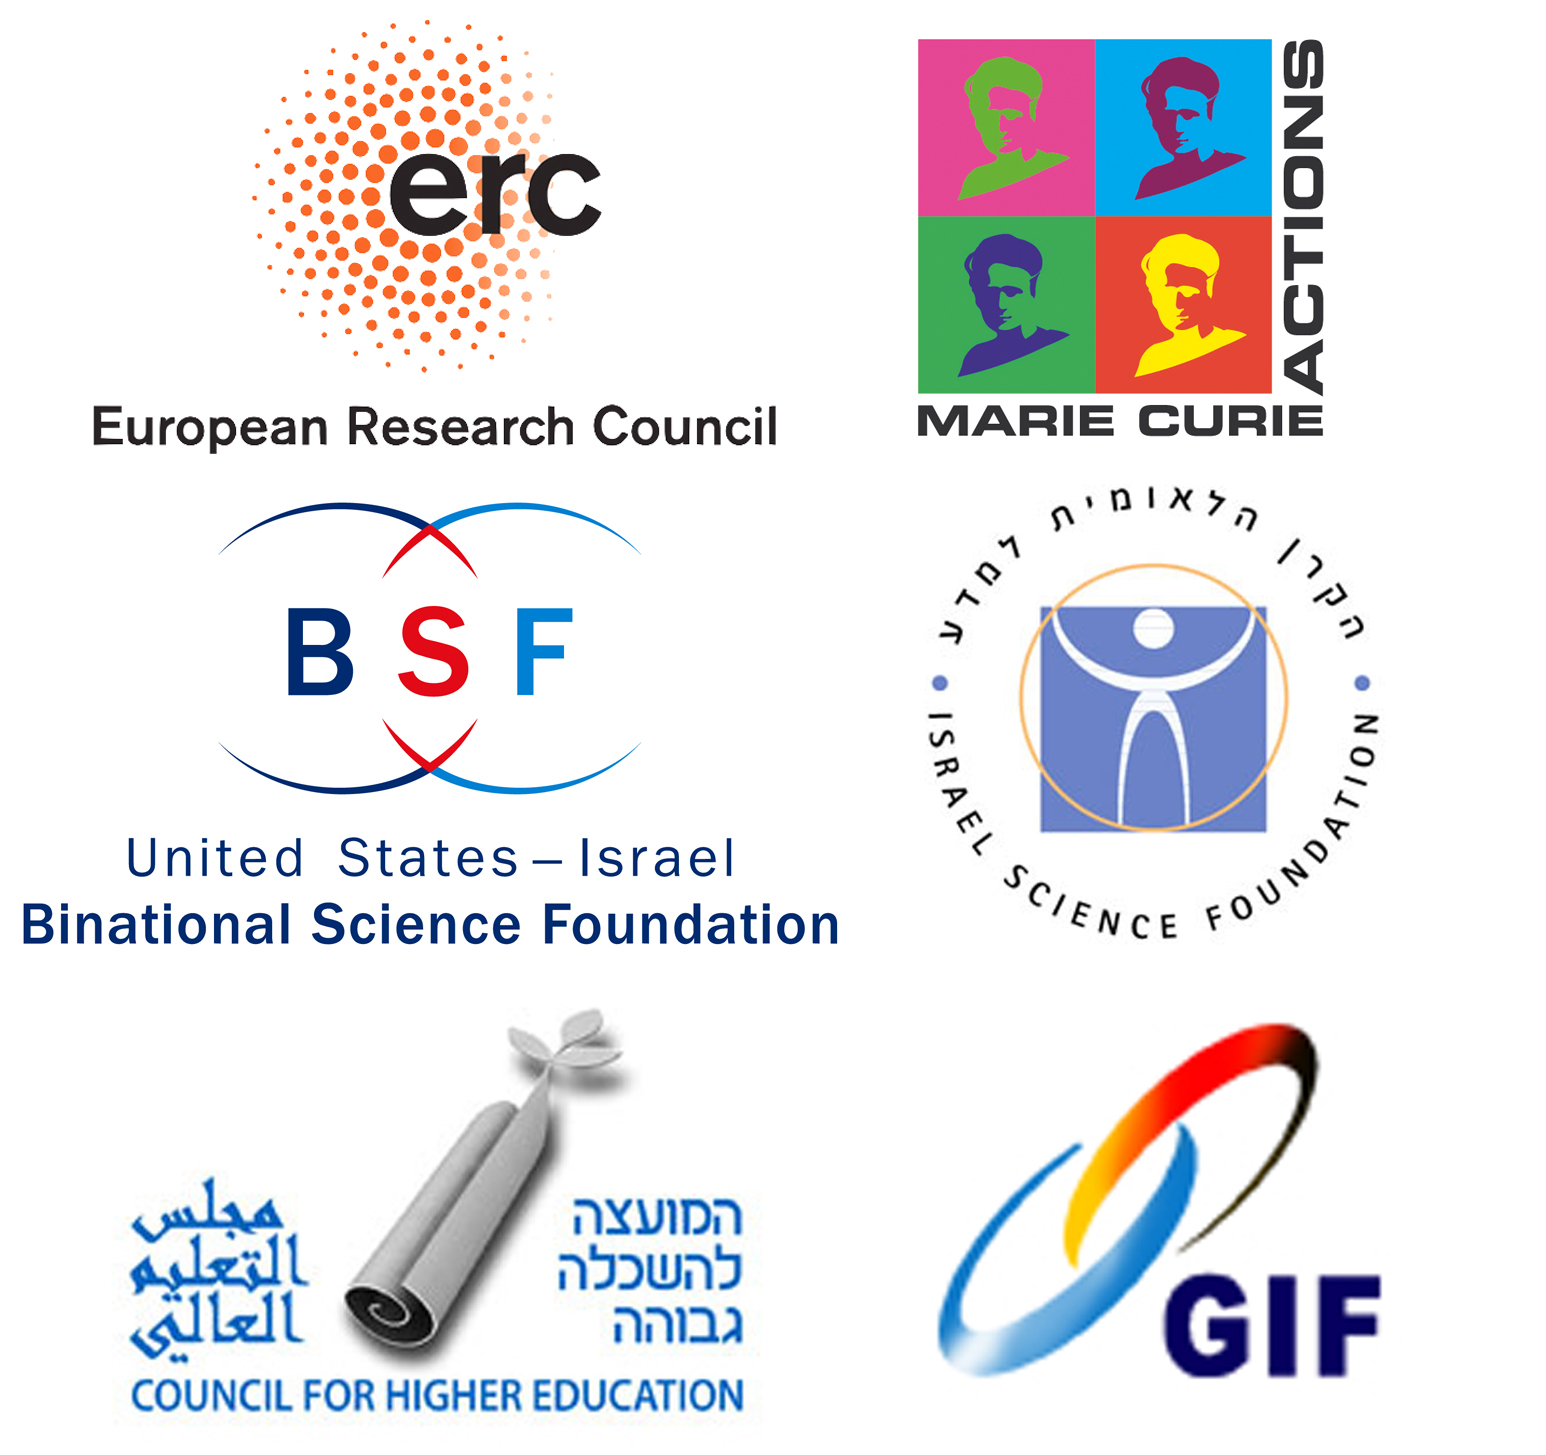 Funding - Our research is generously funded by the Binational Science Foundation (BSF), the European Research Council (ERC), German-Israeli Foundation for Scientific Research and Development (GIF), the Israel Council of Higher Learning, the Israel Science Foundation (ISF) and the Marie Curie Actions of the European Commission. We are grateful for this support.